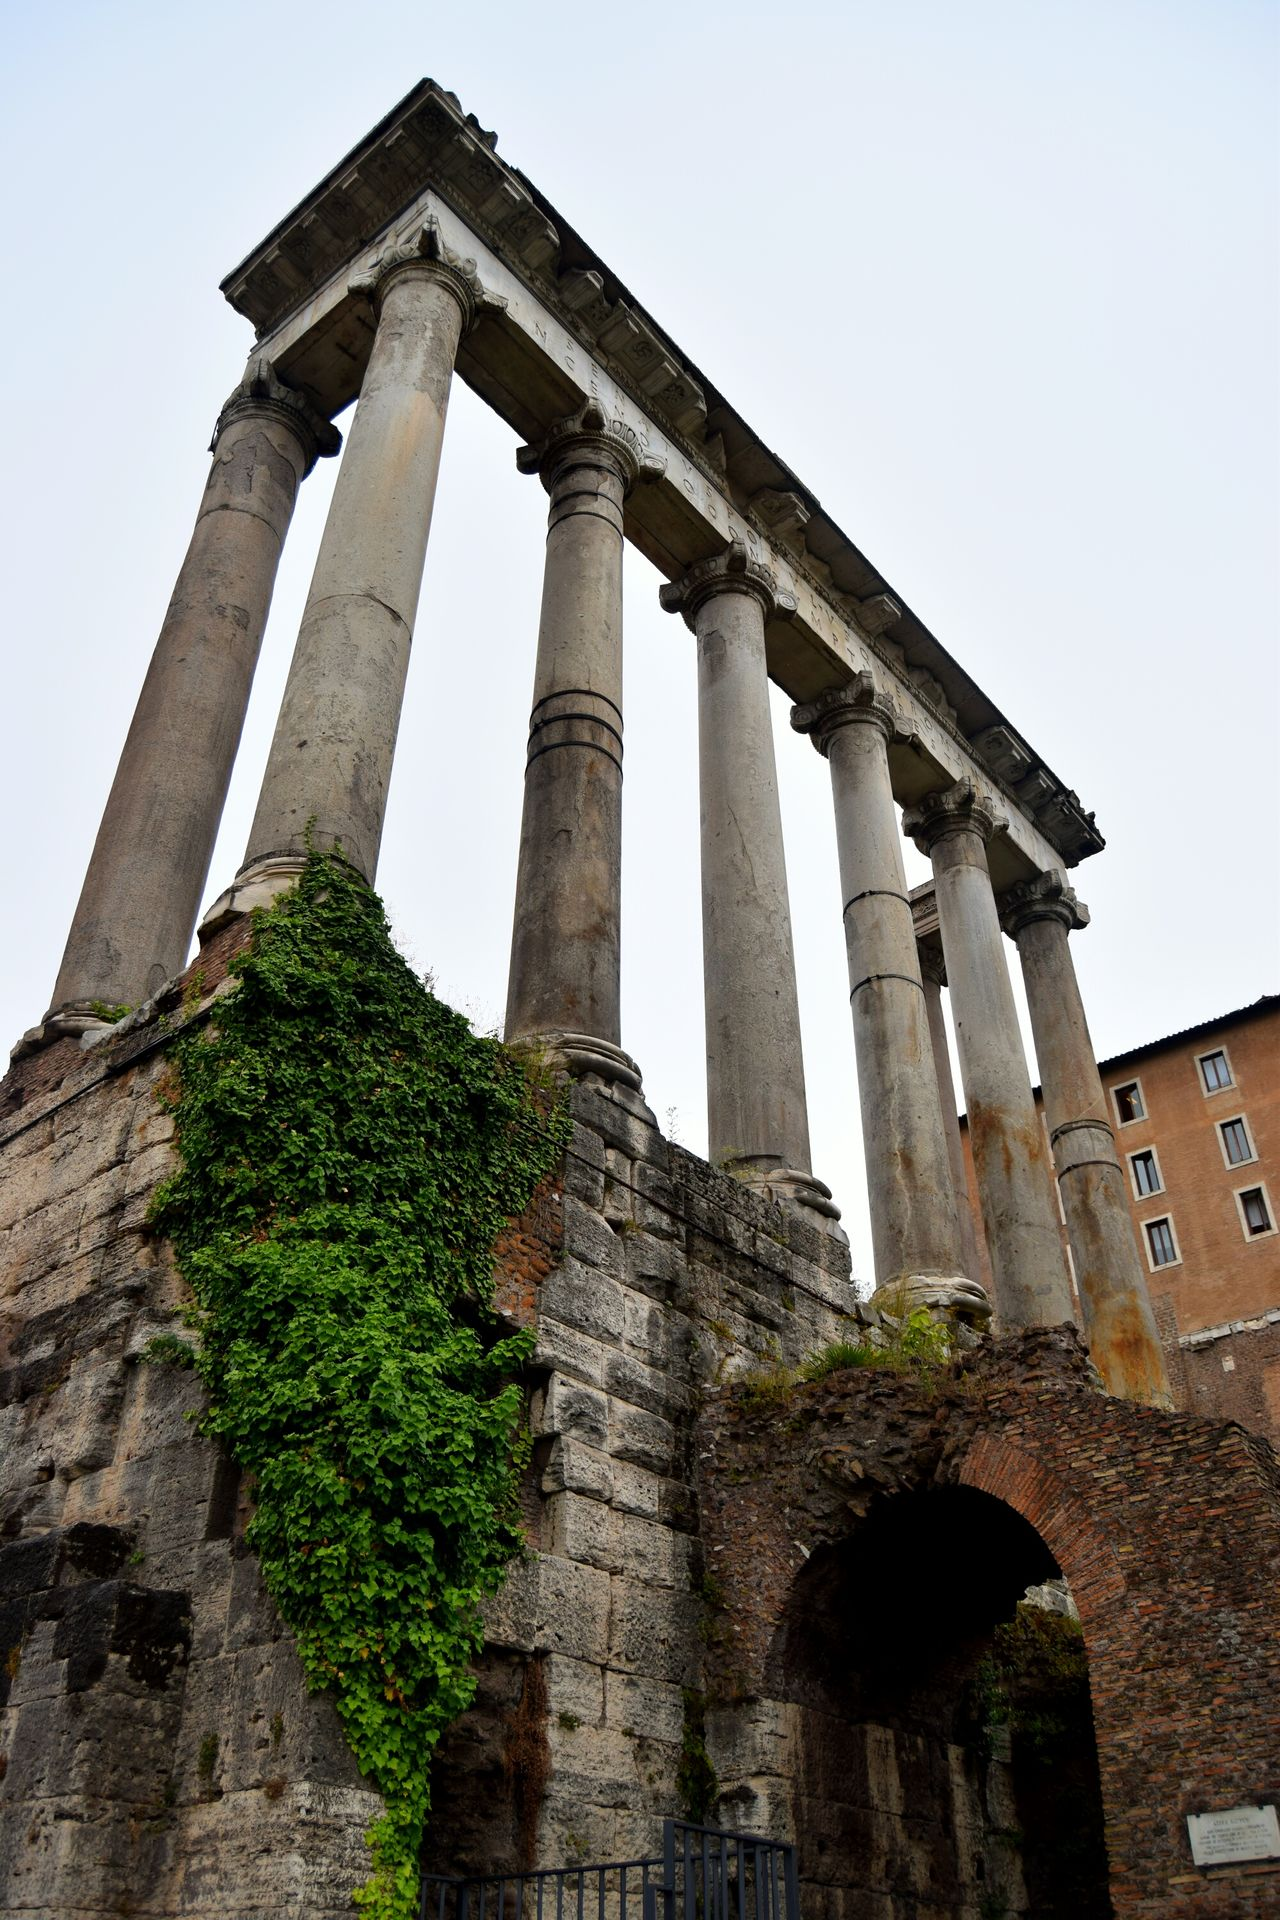 Roma Rome Italy🇮🇹 Temple Architecture Forum White Bricks Center Photooftheday Streetphotography Picoftheday Exploring Walk Stone Old Photographer The Week Of Eyeem Ancient Architecture Photography Clouds Famous Place Marmol Ancient Culture Ancient Ruins Temple Ruins